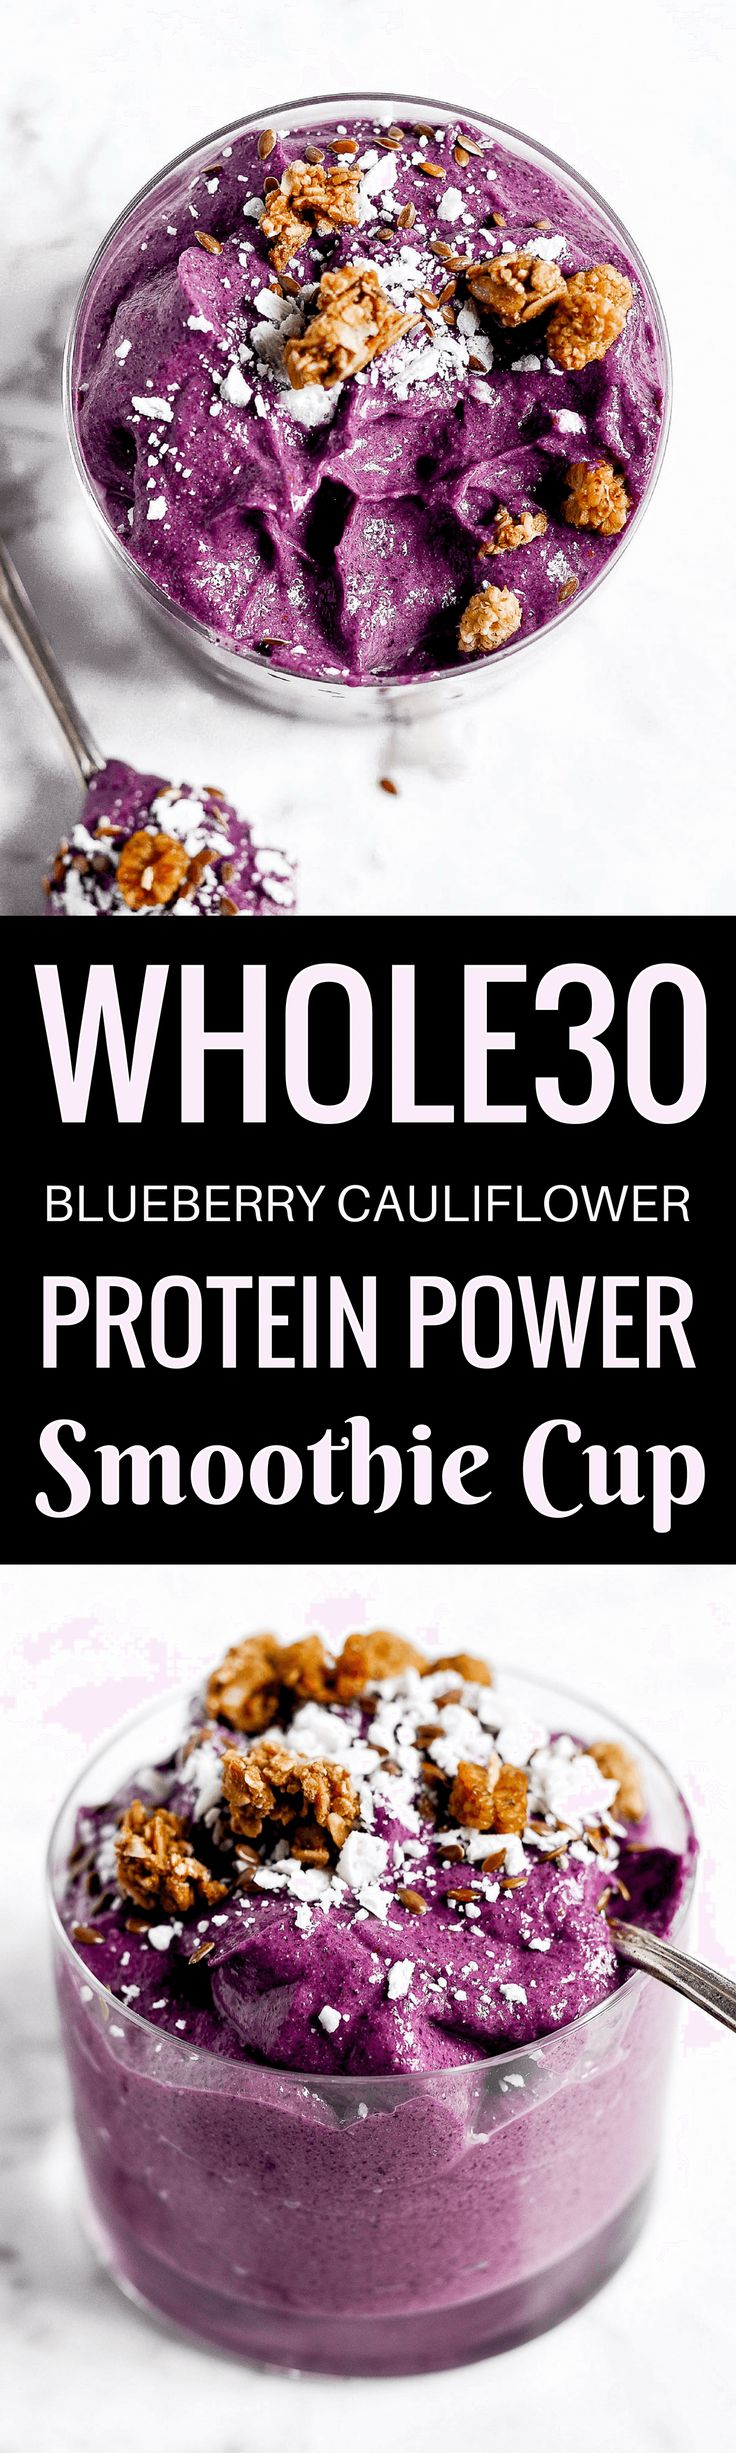 Protein packed blueberry cauliflower smoothie with 18g protein! A creamy, smooth, whole30 and paleo smoothie cup perfect for breakfast, lunch, or dinner! Whole30 breakfast ideas. Easy Whole30 breakfast recipe. Best smoothie recipes. Blueberry smoothie recipe. whole30 meal plan. Easy whole30 dinner recipes. Easy whole30 dinner recipes. Whole30 recipes. Whole30 lunch. Whole30 meal planning. Whole30 meal prep. Healthy paleo meals. Healthy Whole30 recipes. Easy Whole30 recipes. Easy whole30…